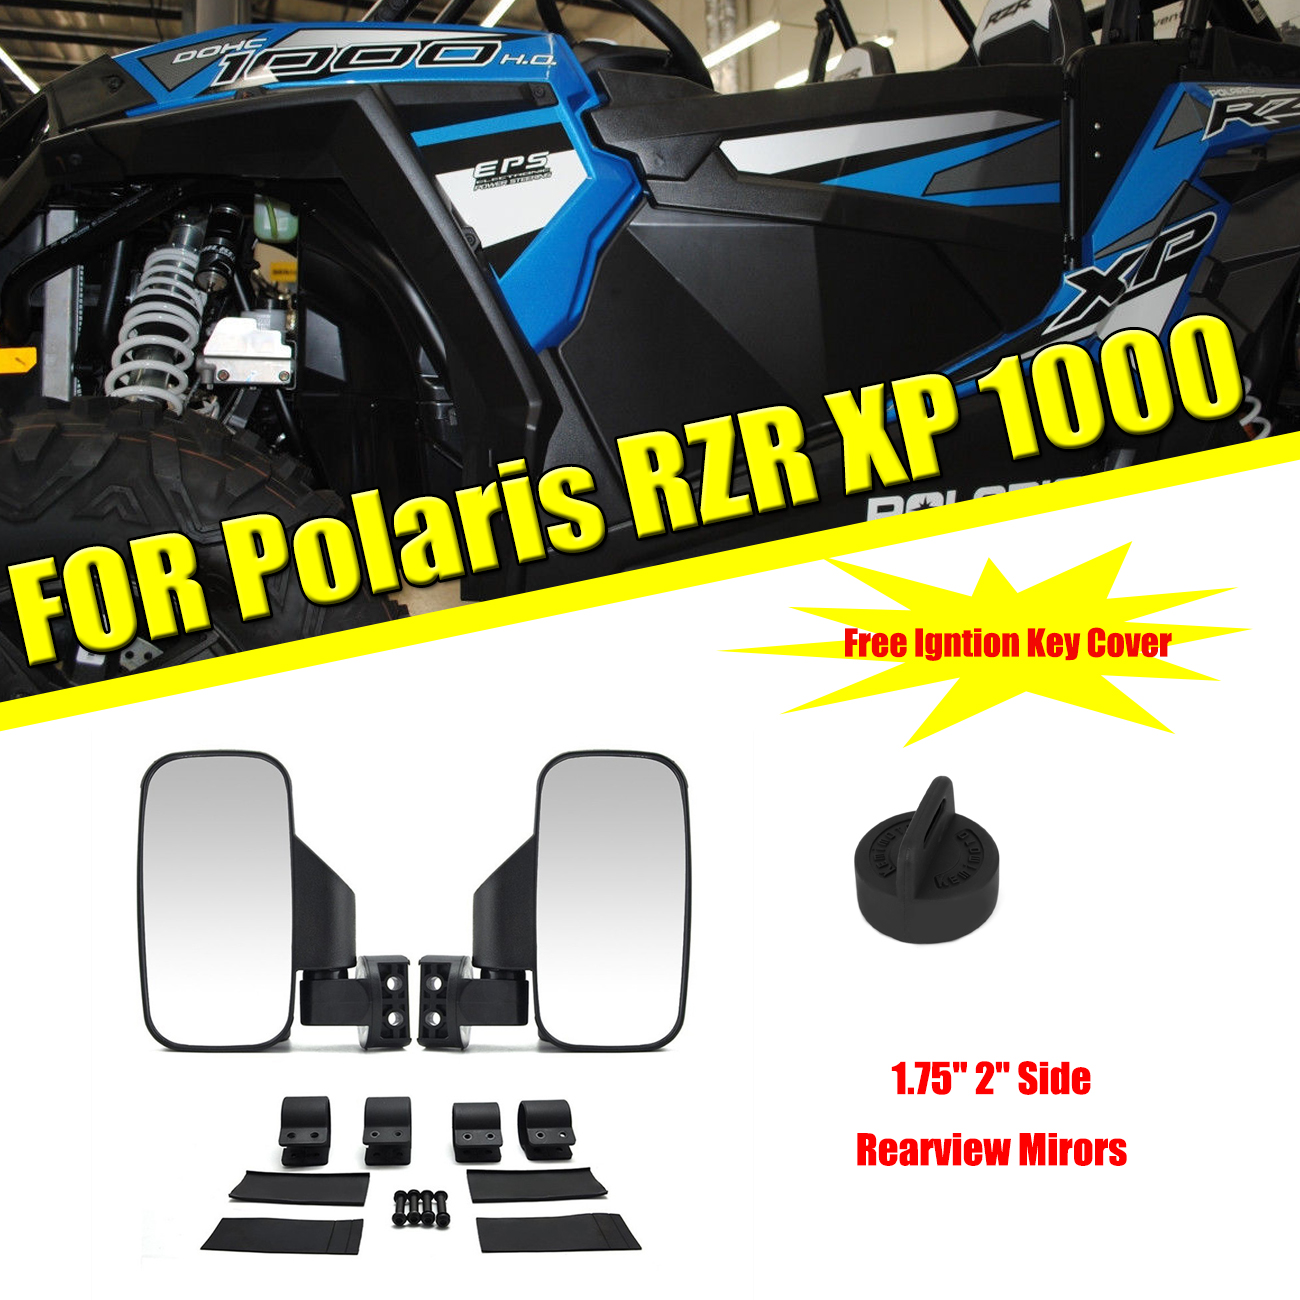 "KEMiMOTO 1.75"" 2"" UTV Mirror Side Rearview Mirrors For Polaris RZR PRO XP 800 900 1000 Ranger For Can Am Racing Mirror"